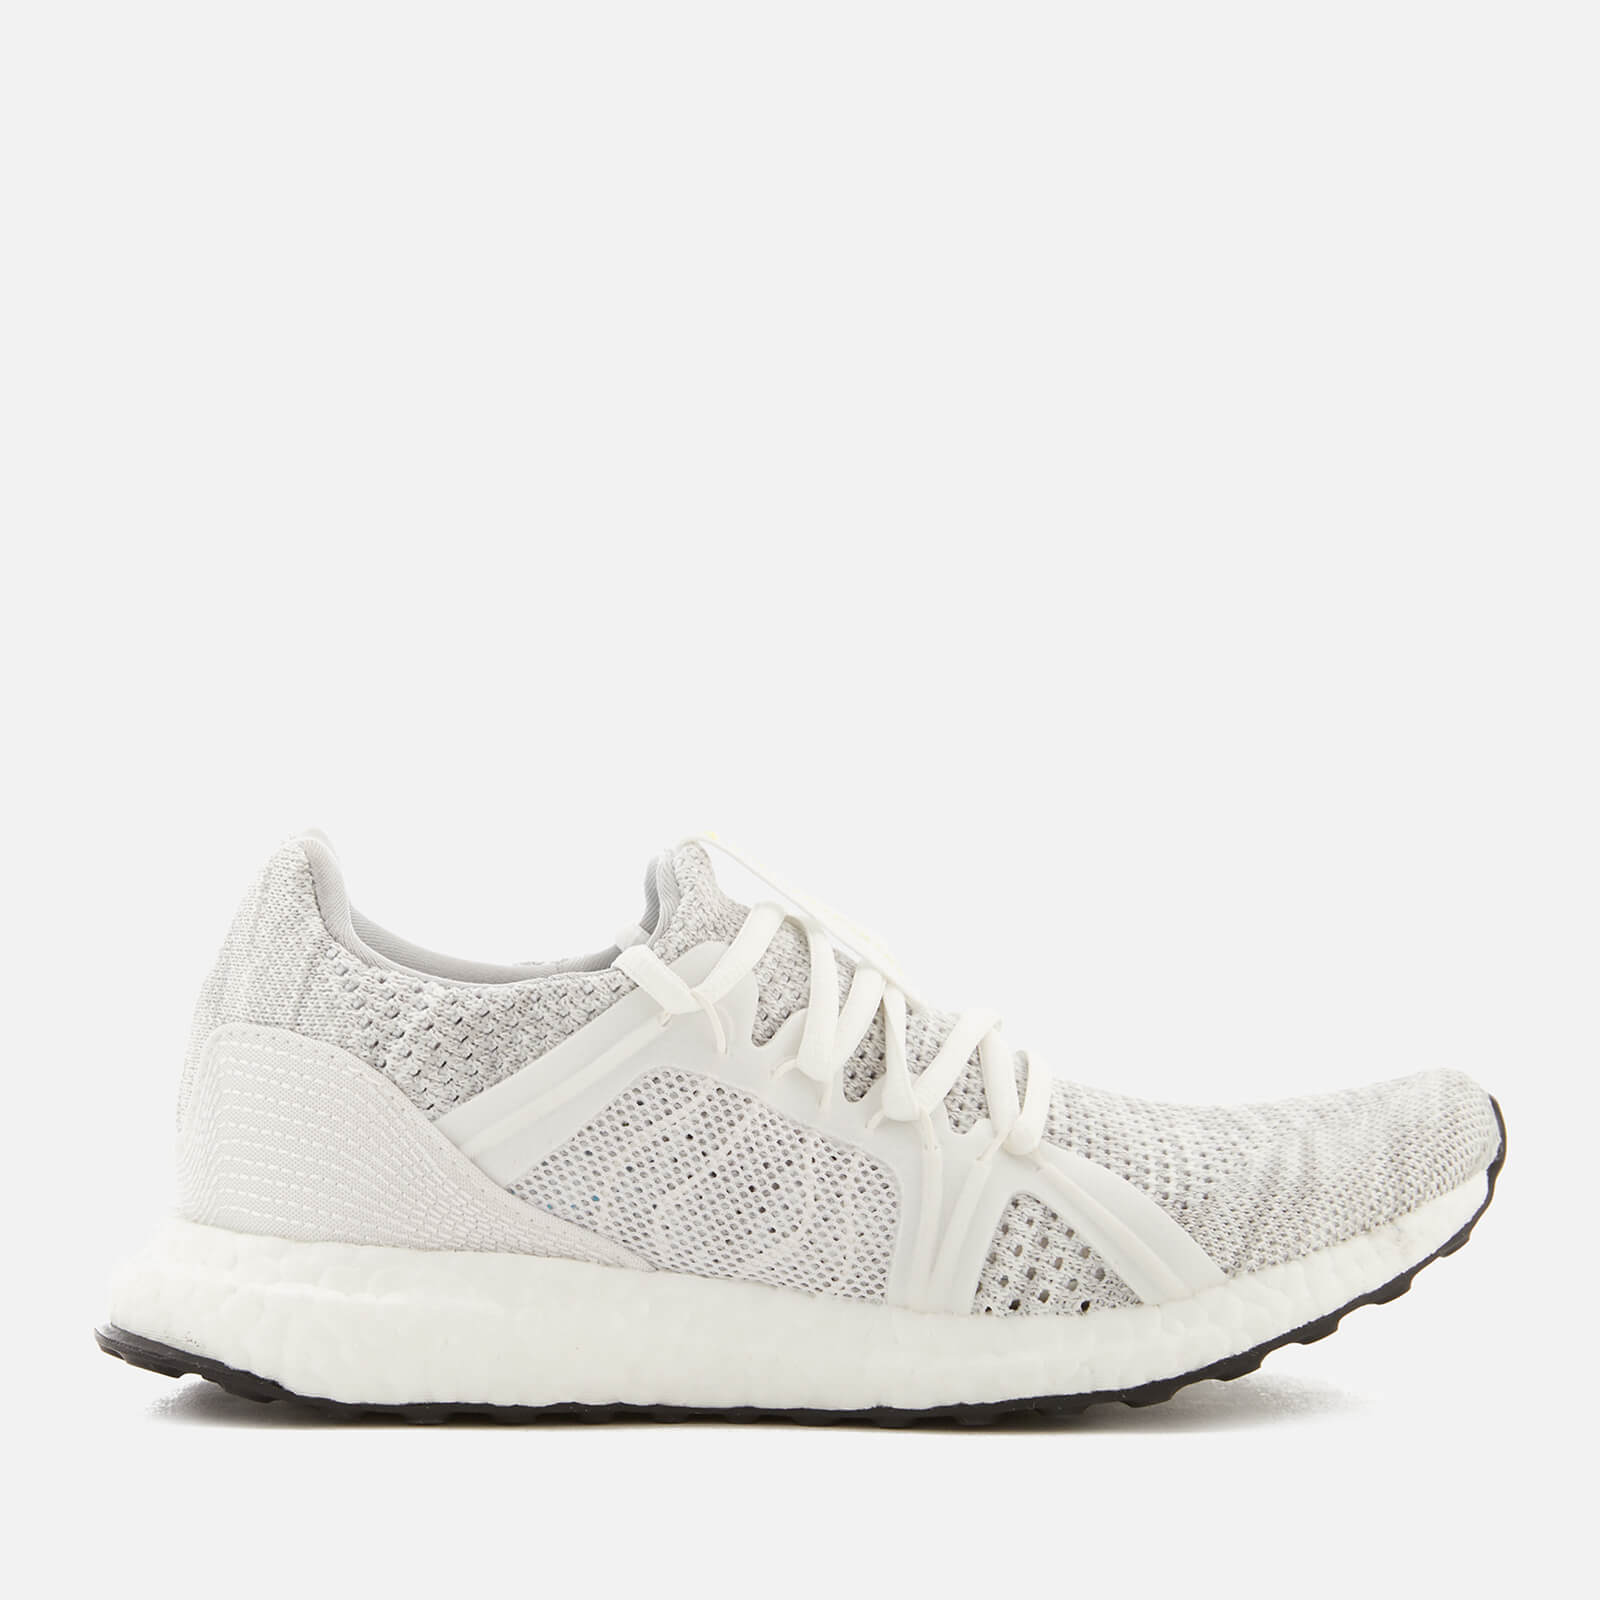 new items high fashion choose clearance adidas by Stella McCartney Women's Ultraboost Parley Trainers - Stone/Core  White/Mirror Blue